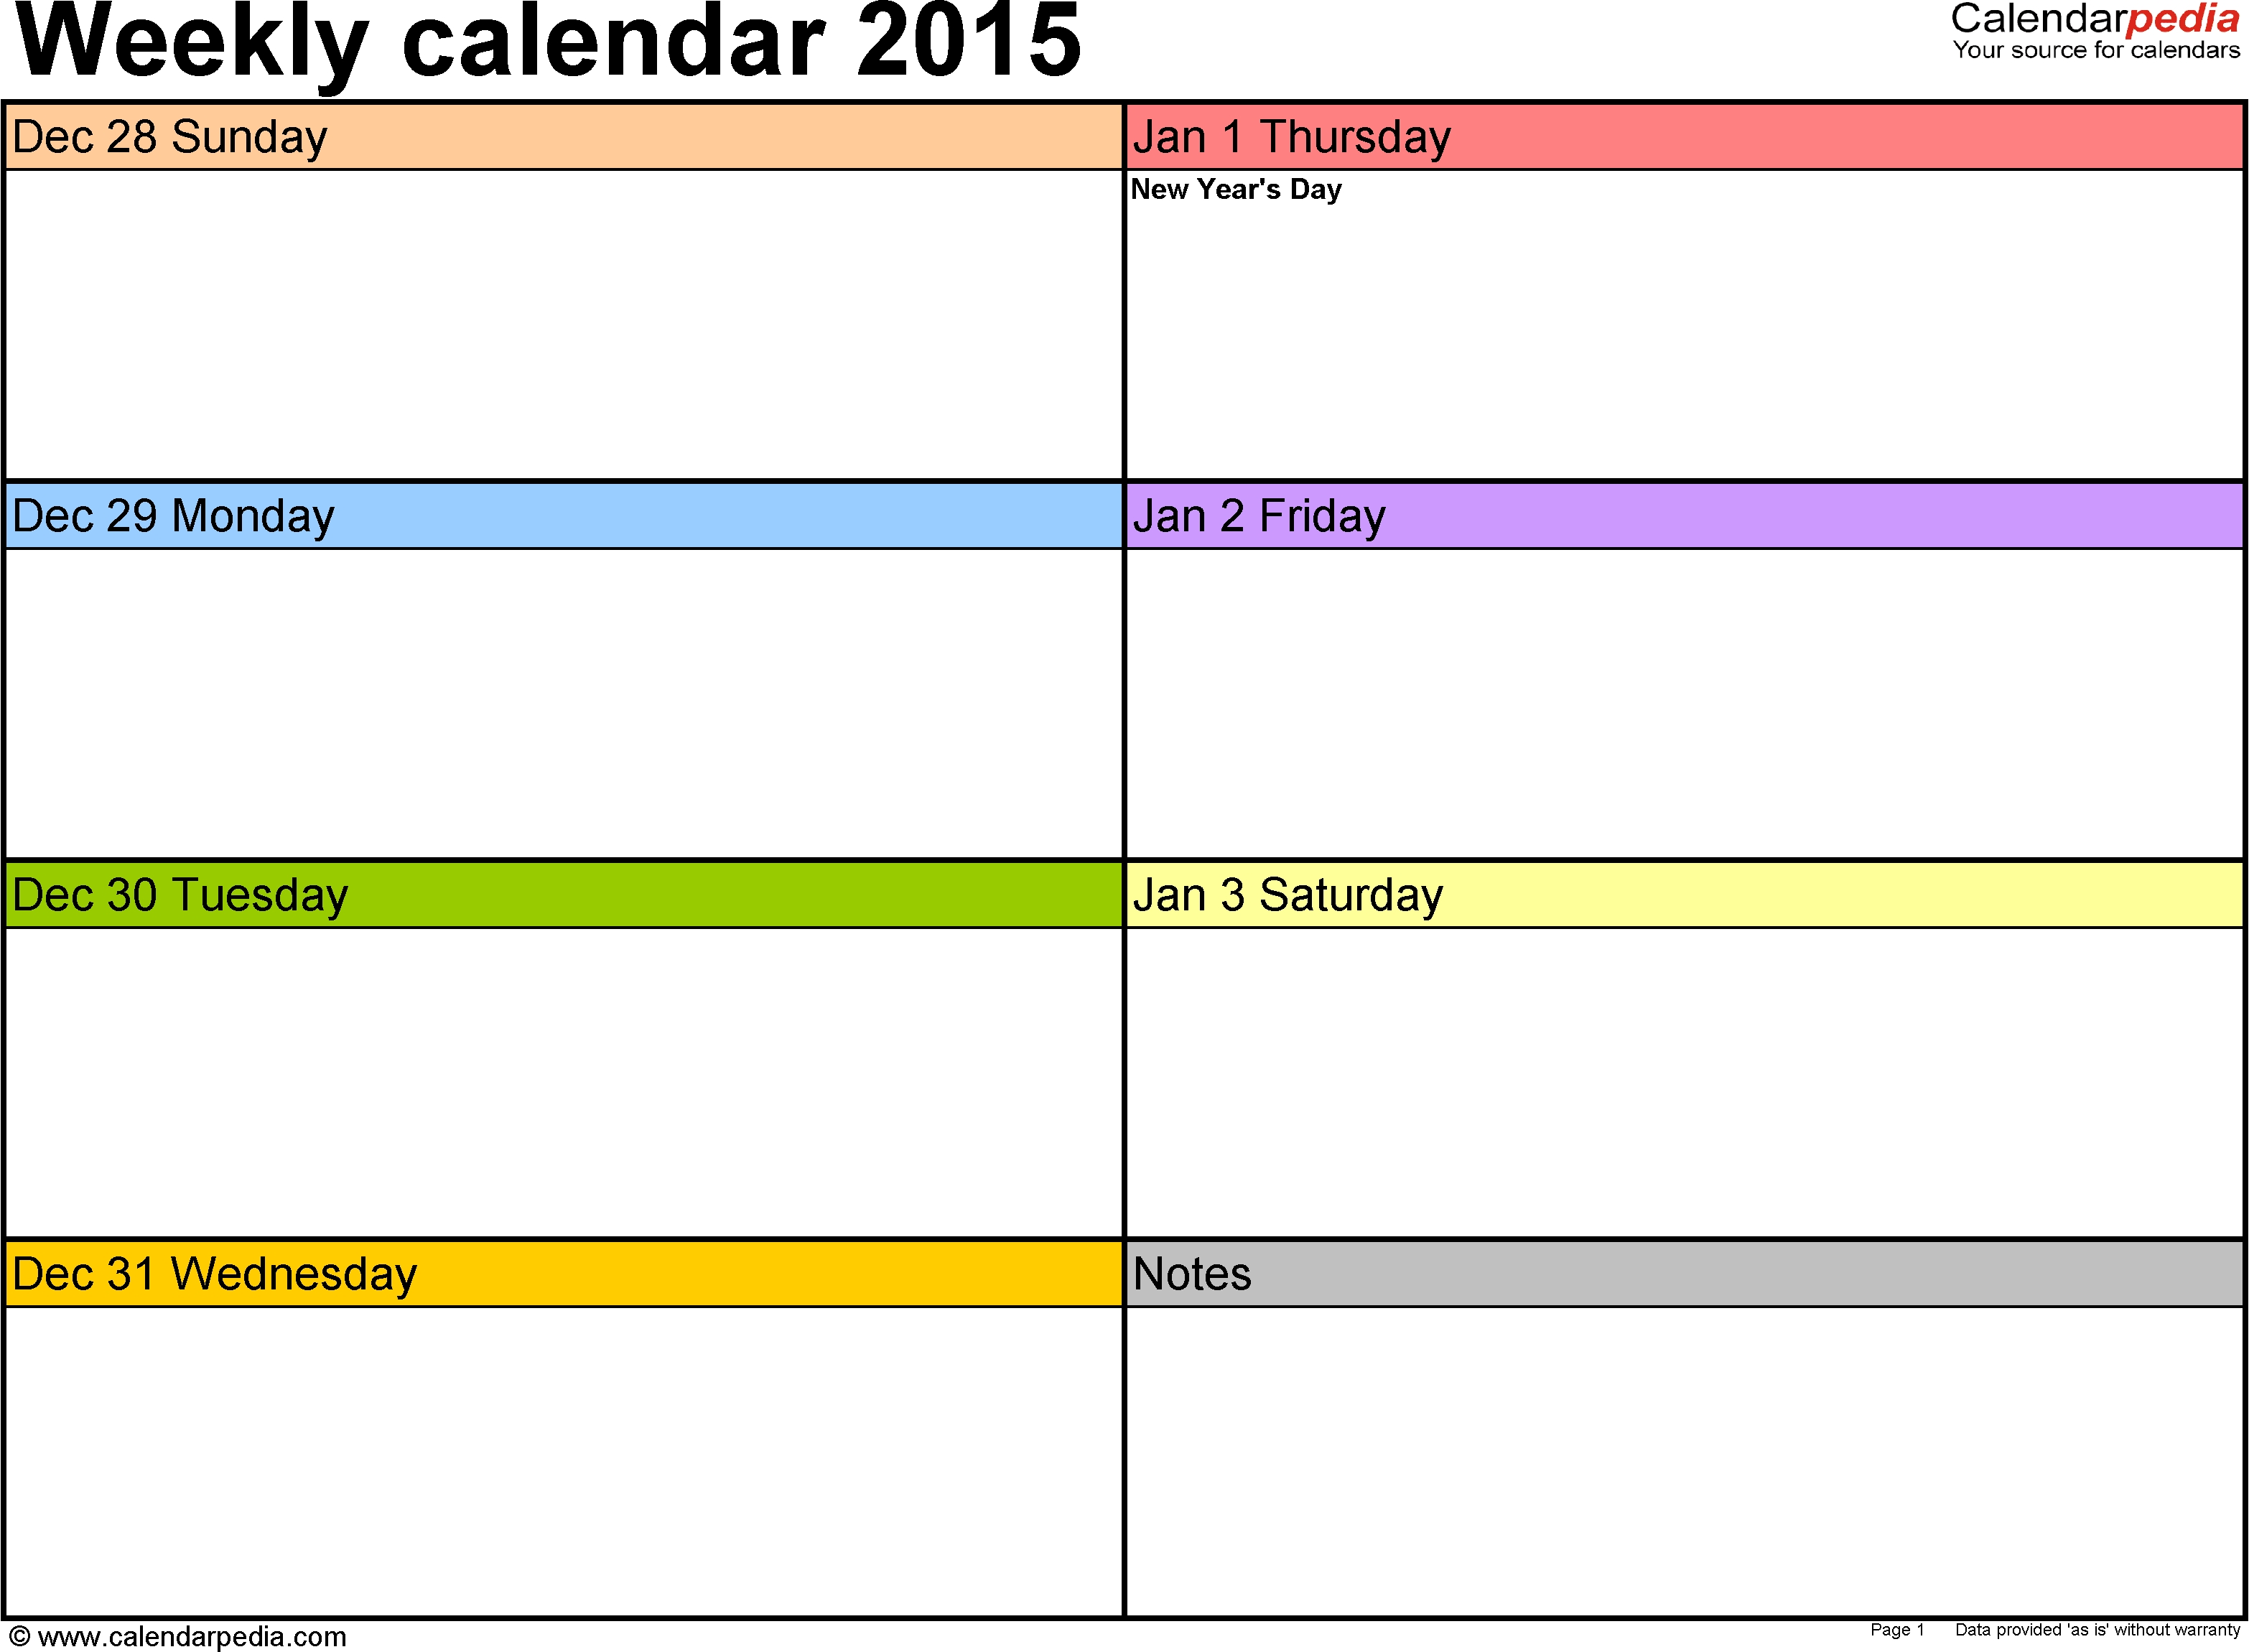 Weekly Calendar 2015 For Pdf - 12 Free Printable Templates pertaining to One Week Daily Calendar Printable